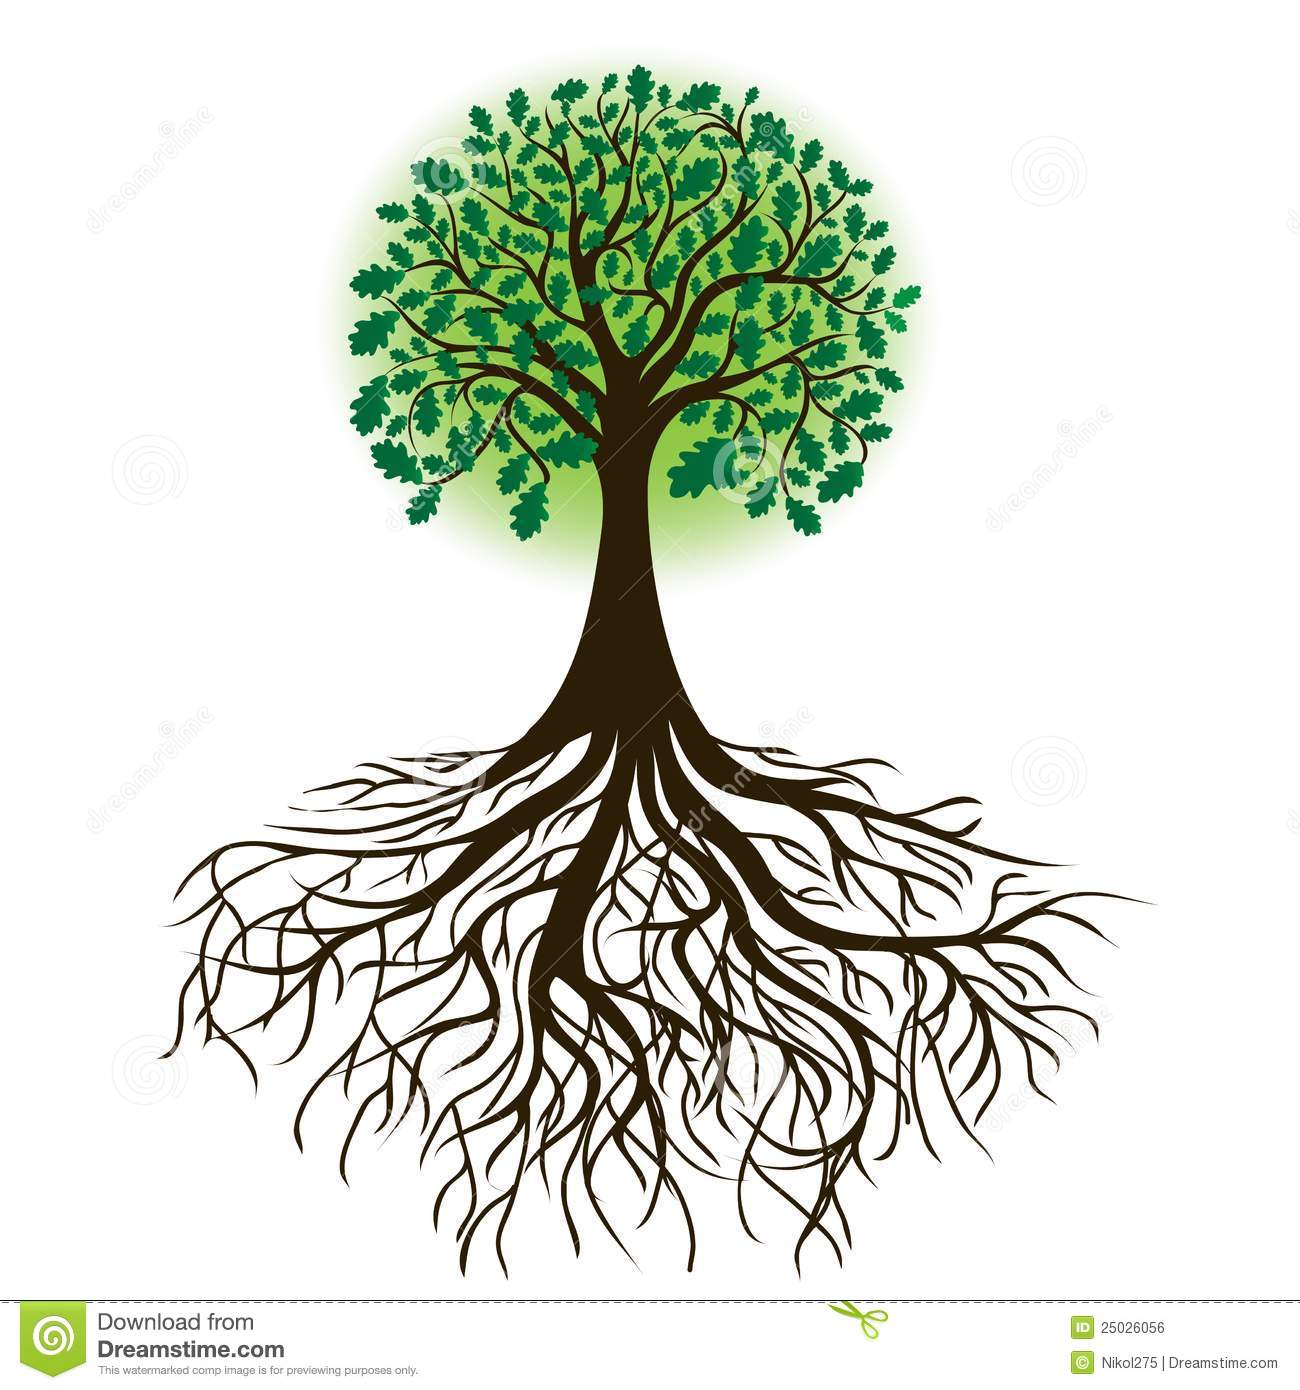 trees with roots clip art - B - Tree Roots Clipart